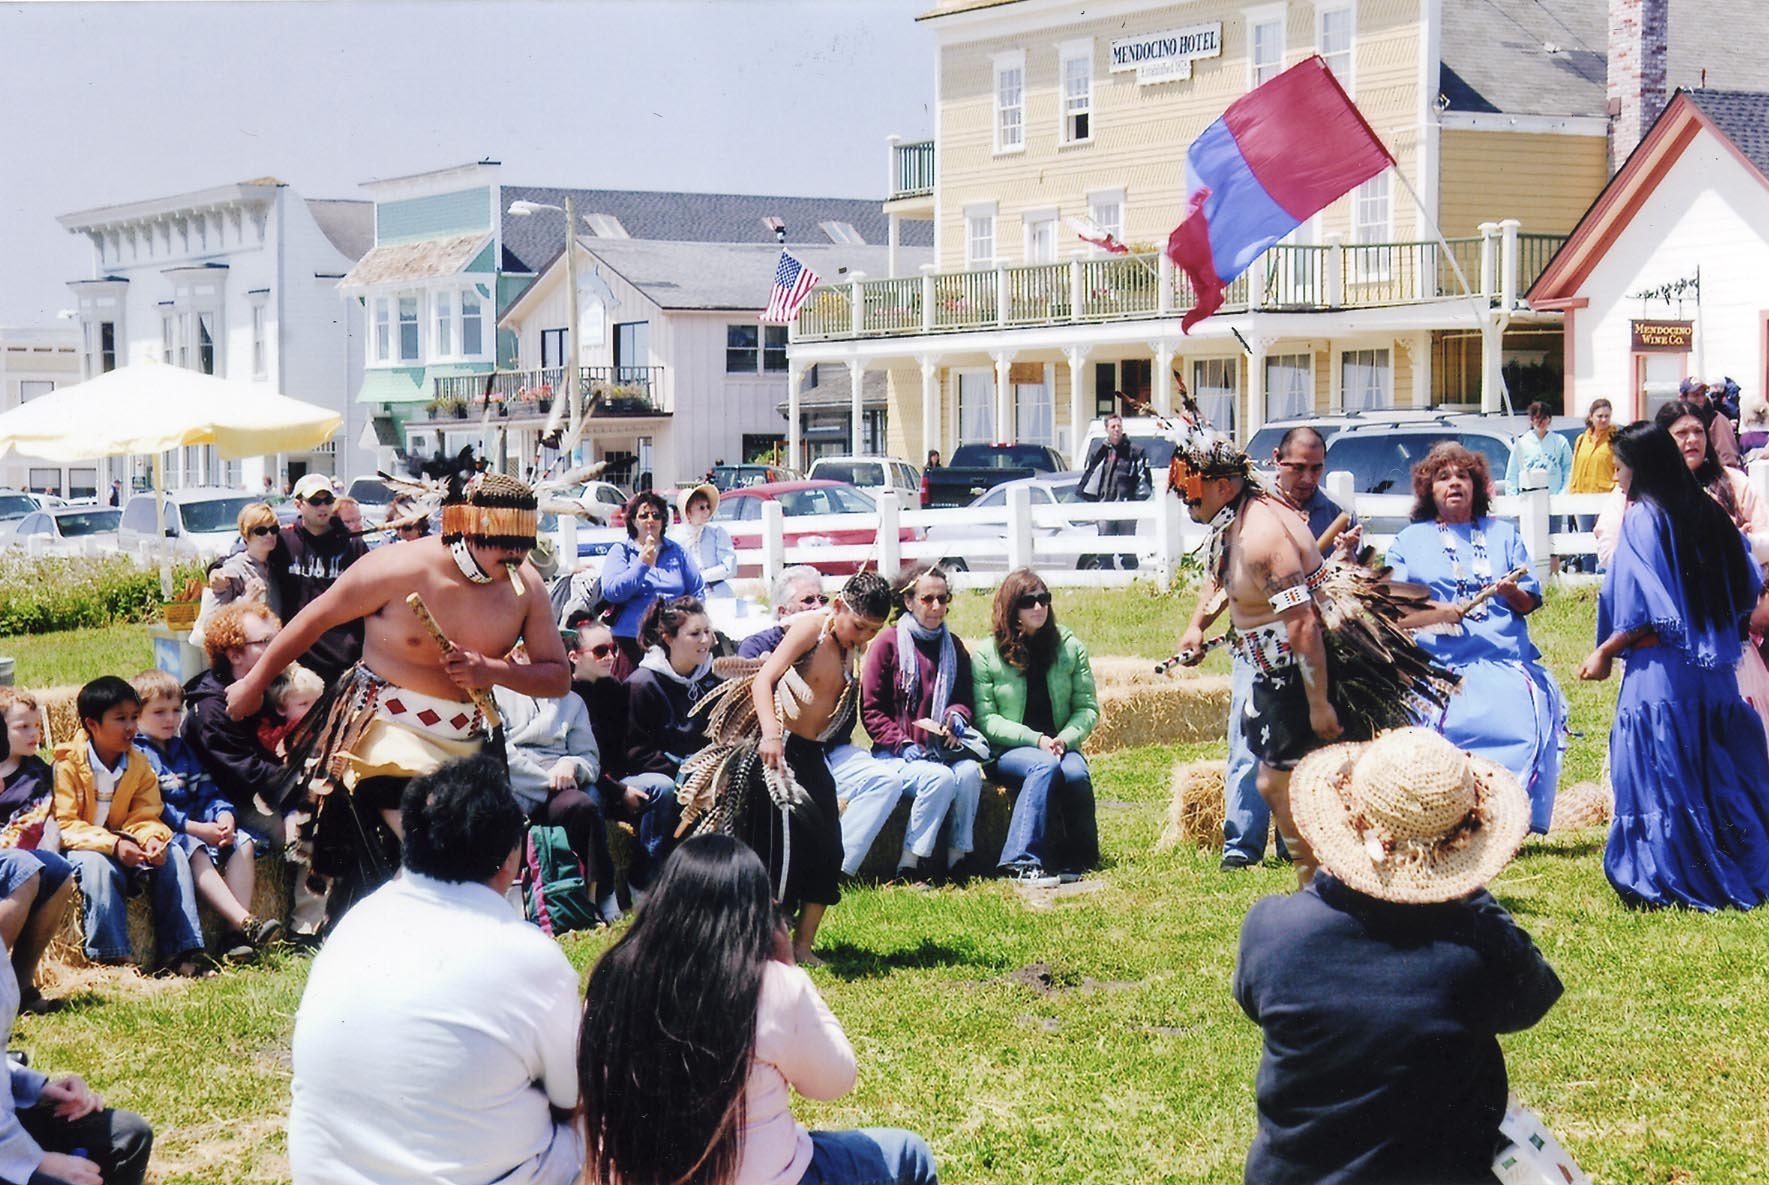 Each year, Mendocino celebrates Heritage Days, featuring living history reenactments.